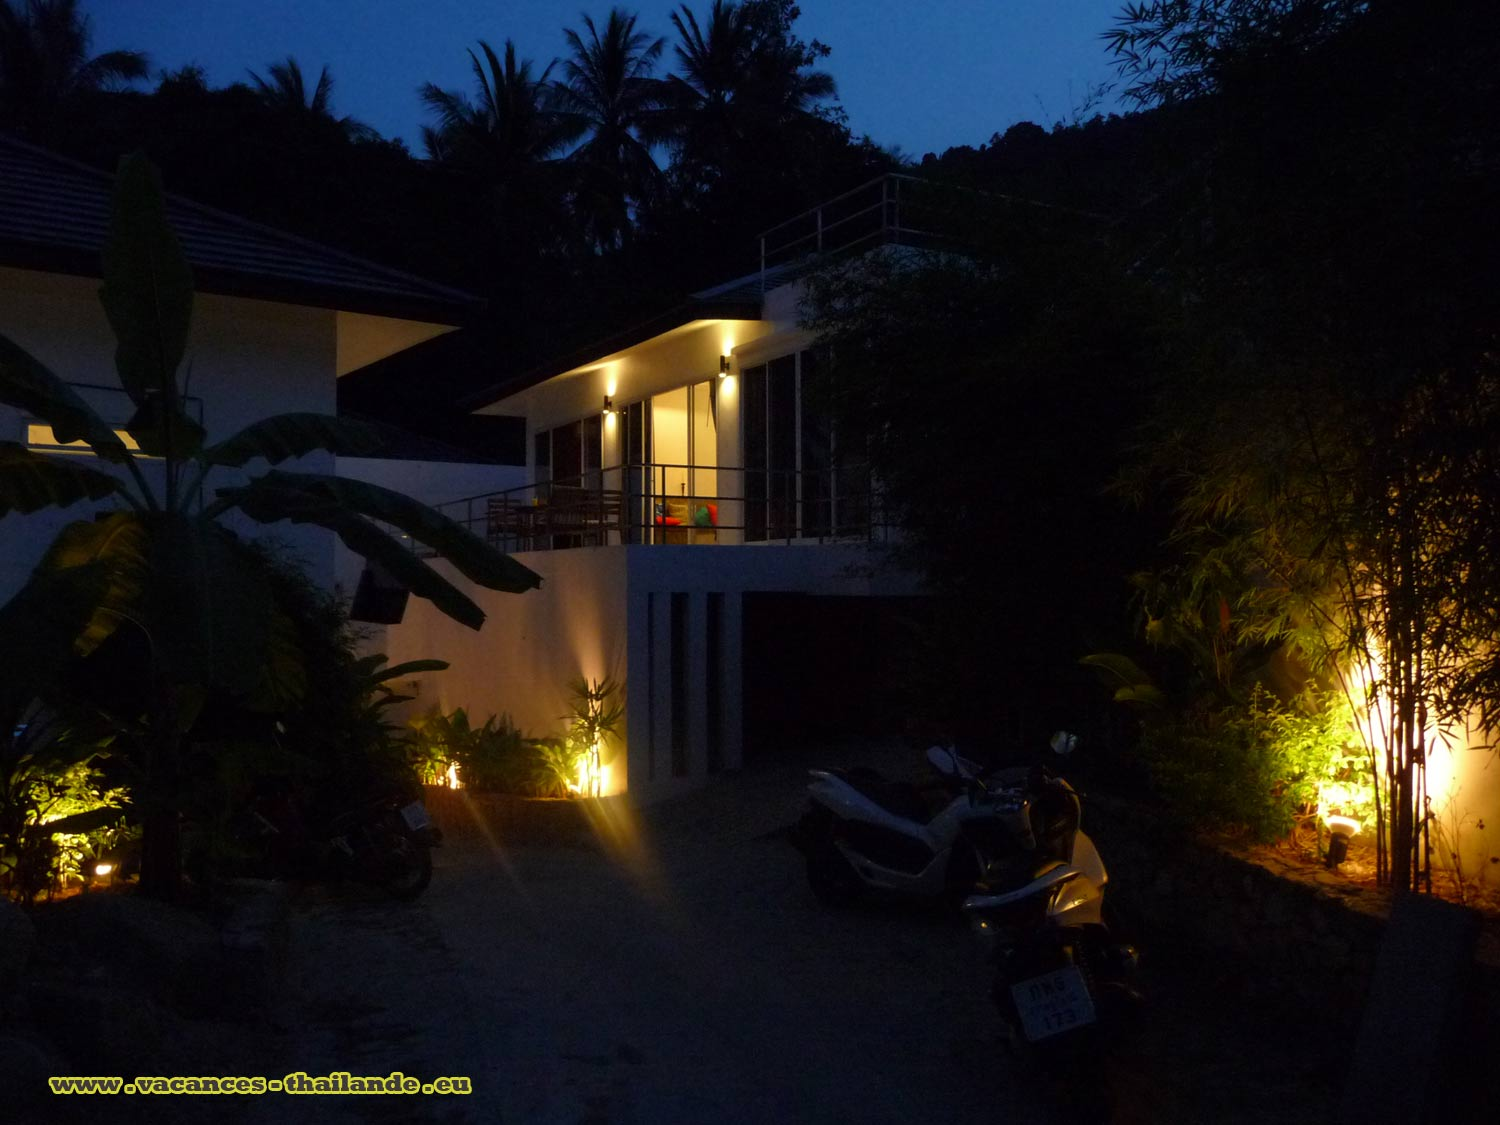 Vacances thailande photo 25 villa terrasse piscine for Piscine eclairee la nuit